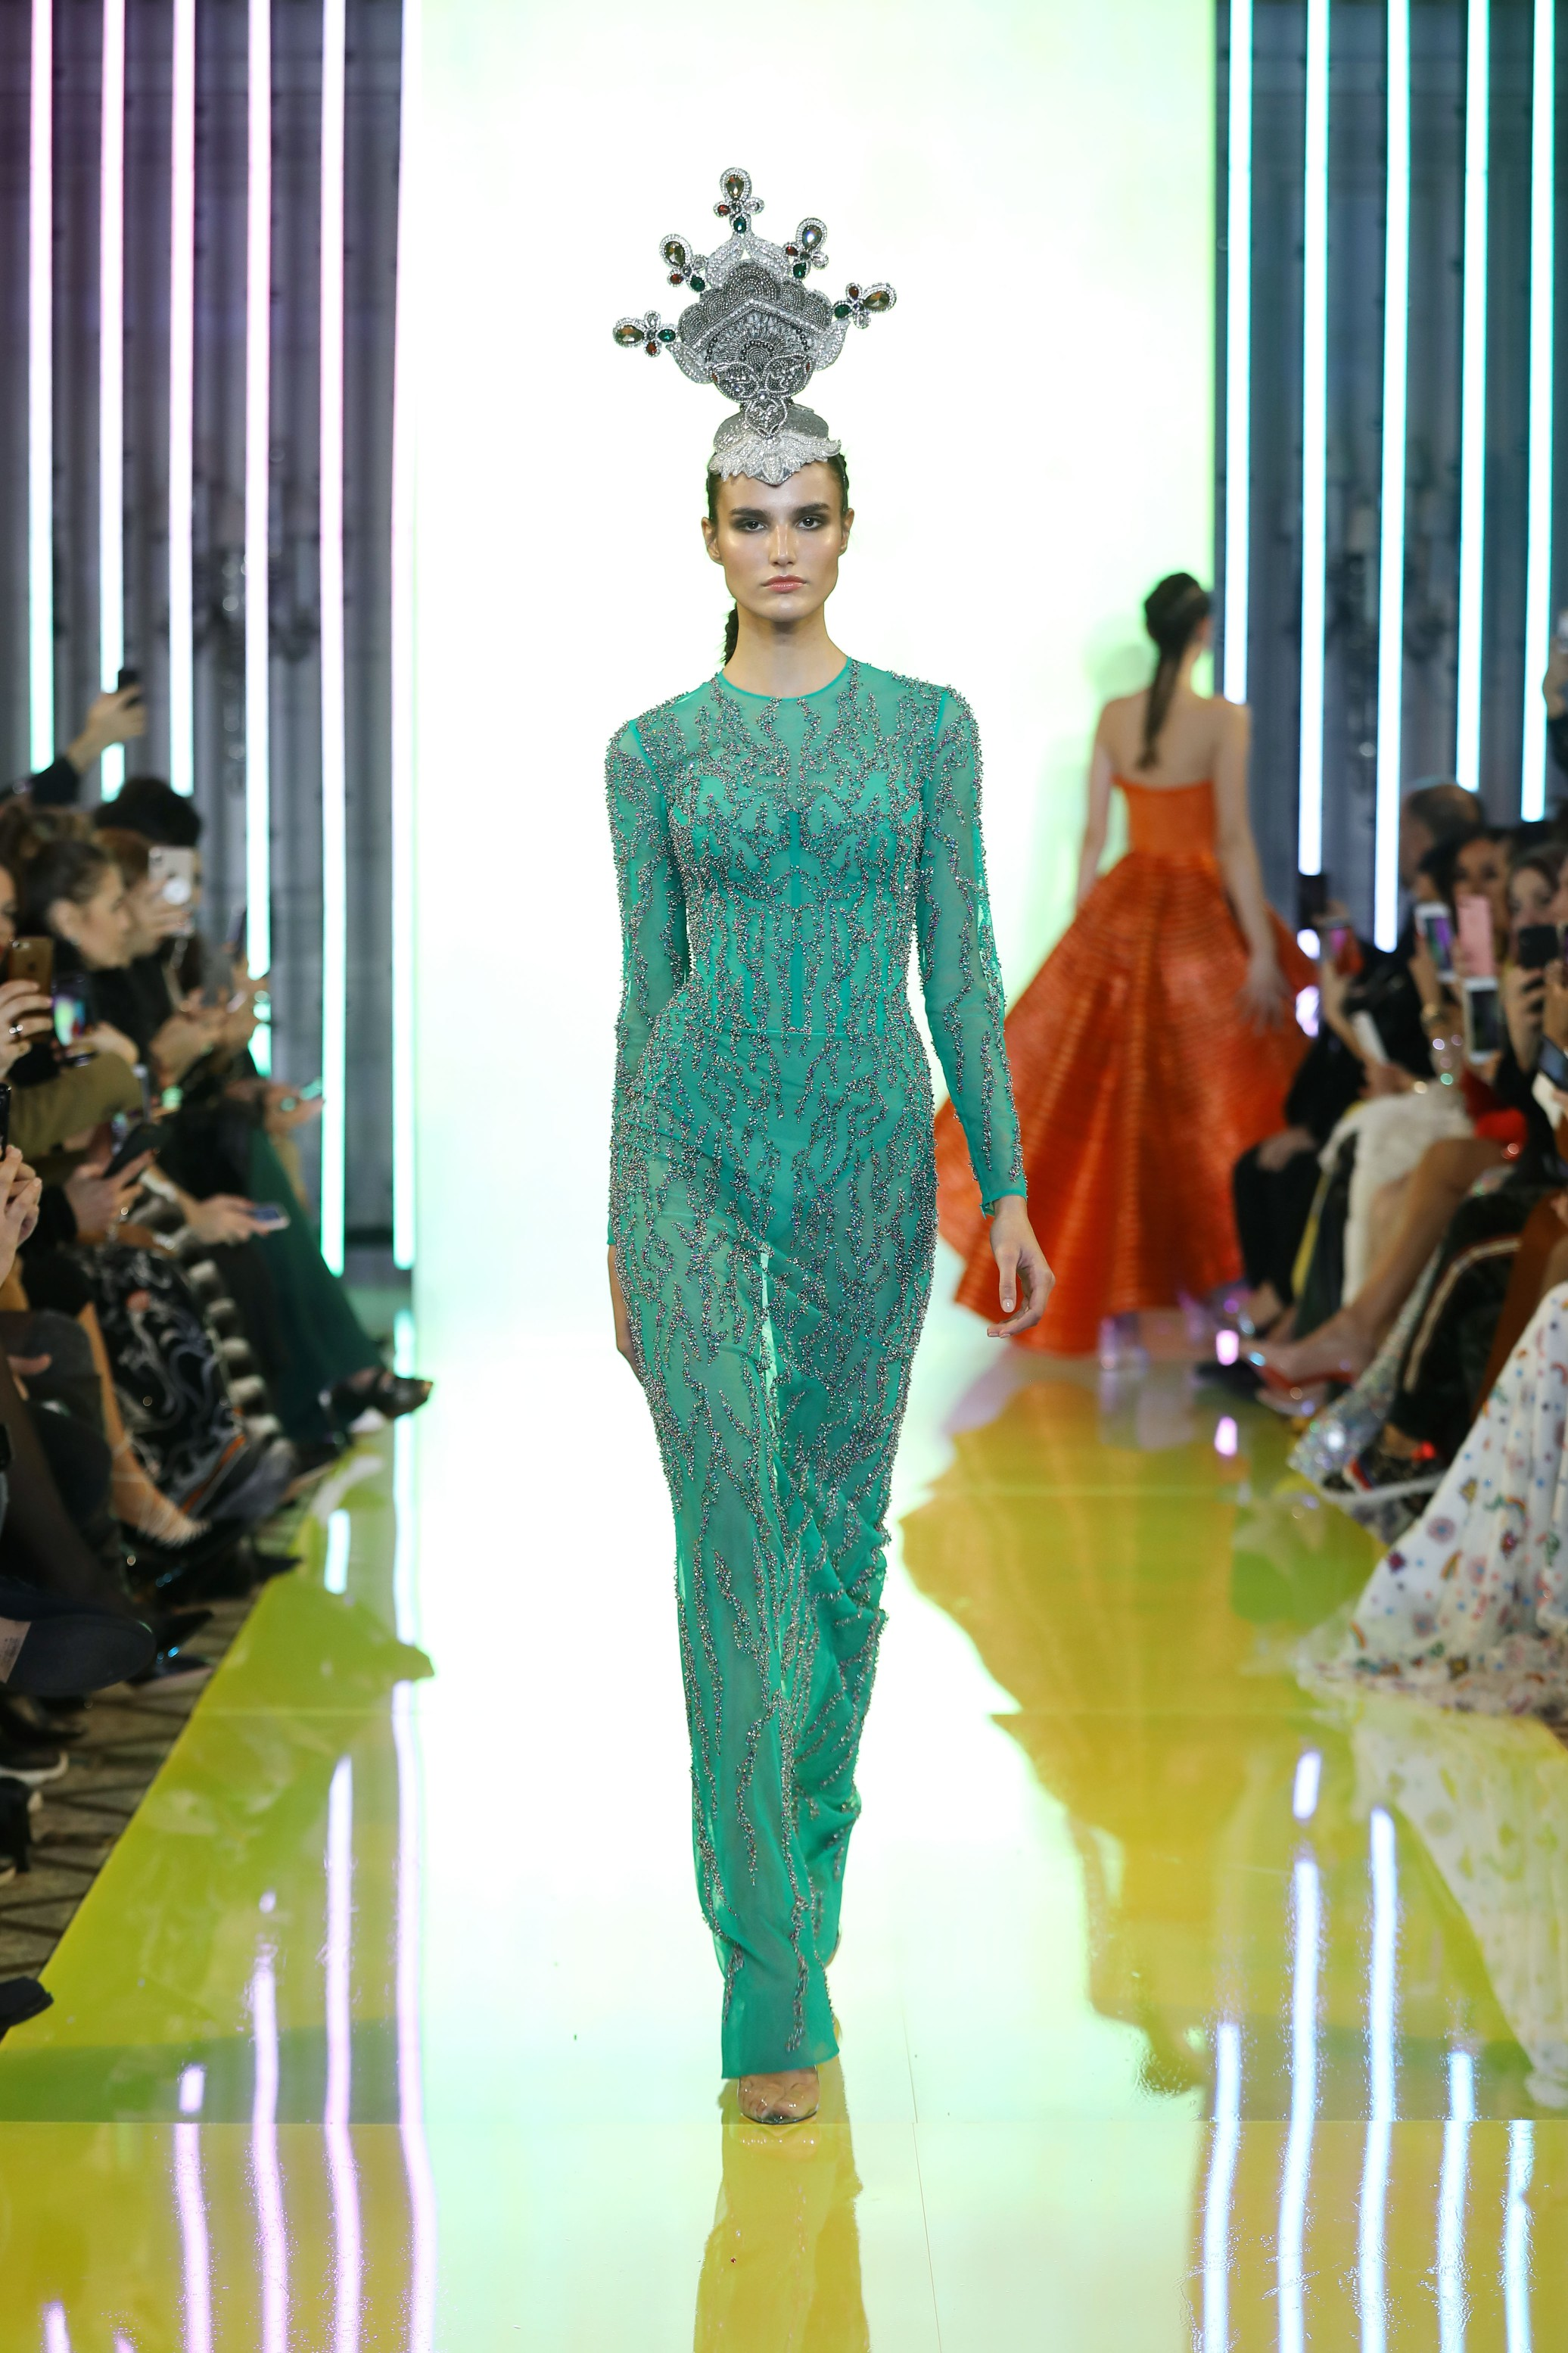 SS19-14 Petrol Green Long Dress Embellished With Colored Swarovski Crystals And Beads .jpg